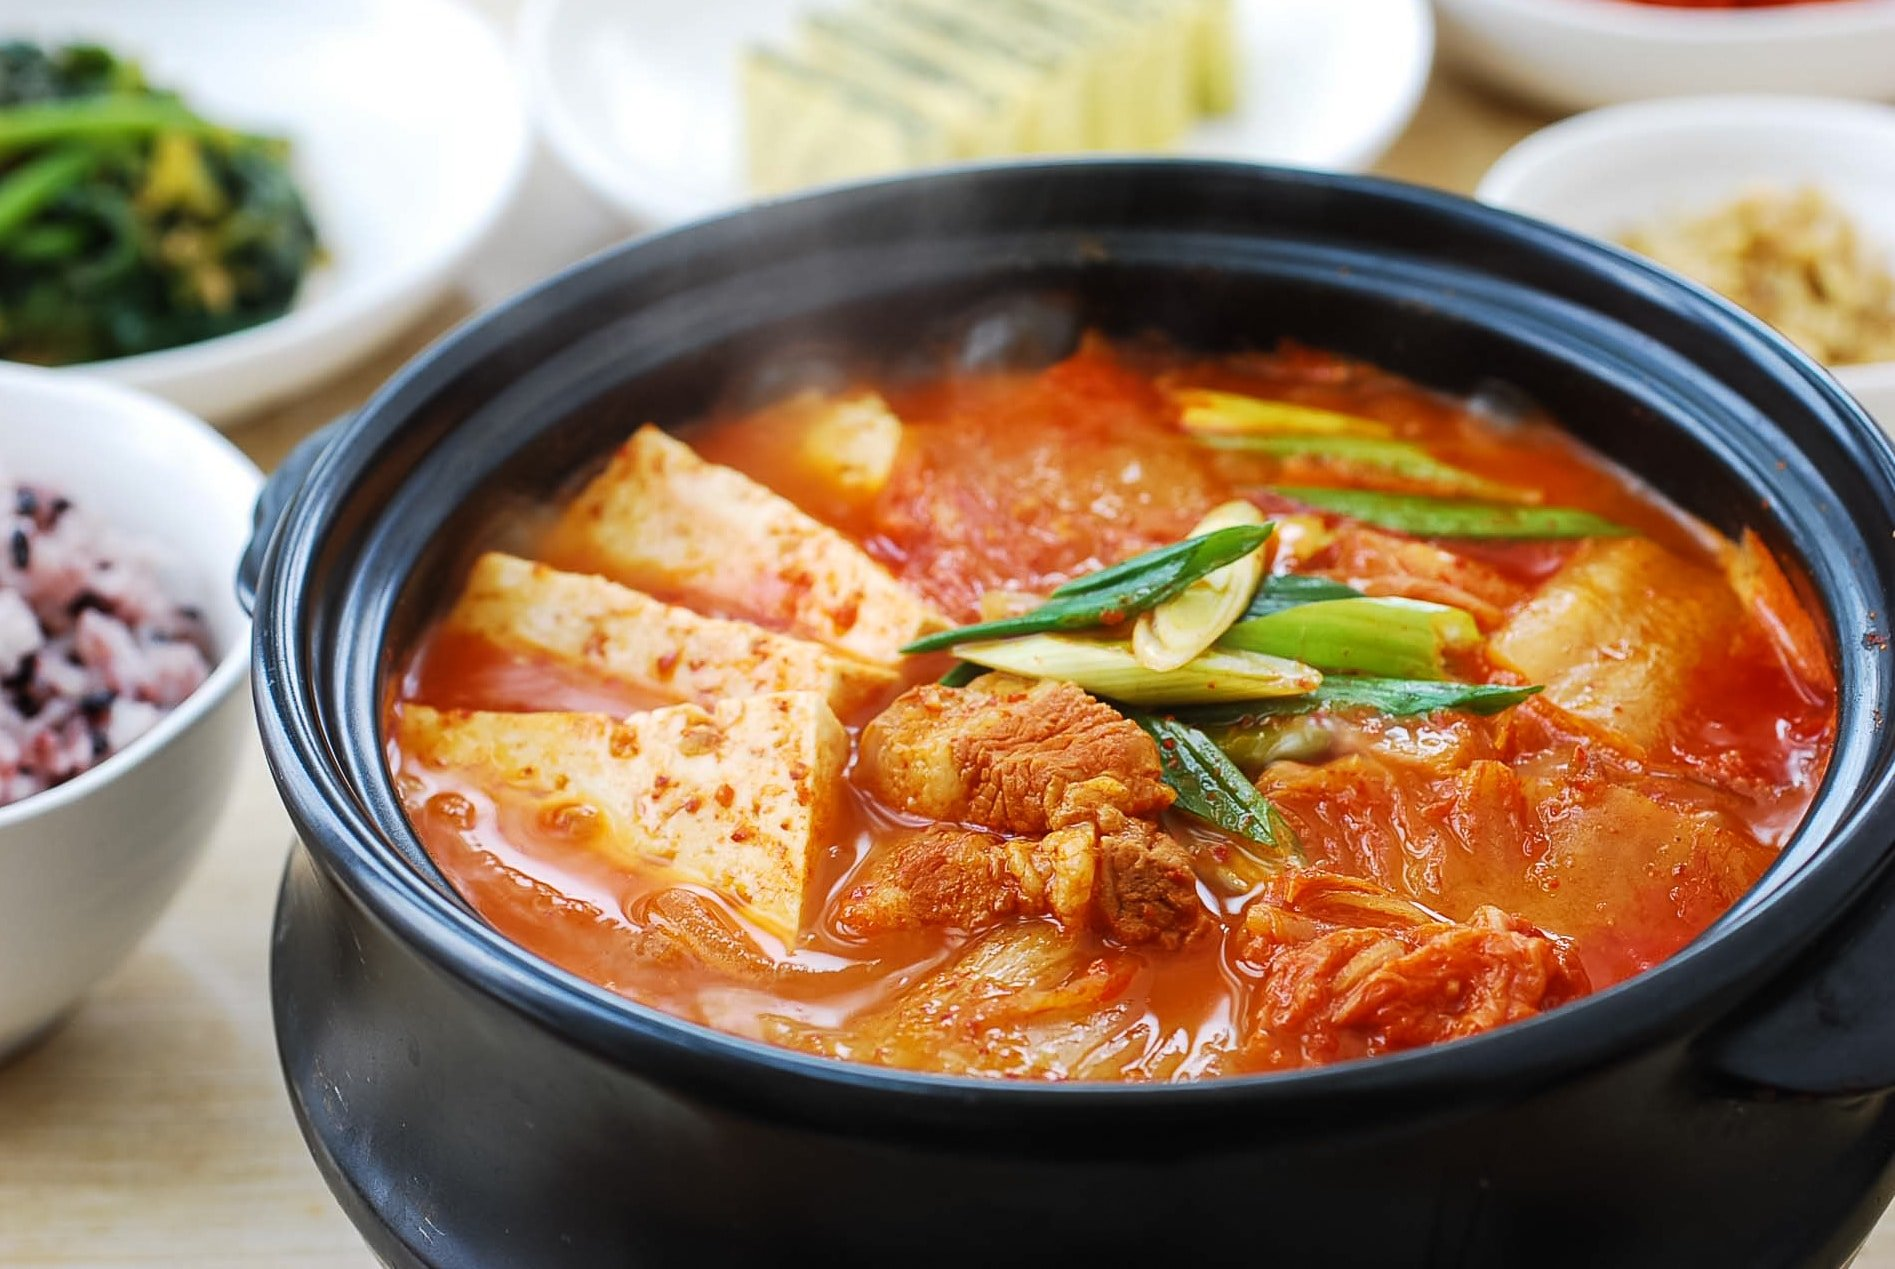 Red spicy kimchi stew in an earthen pot